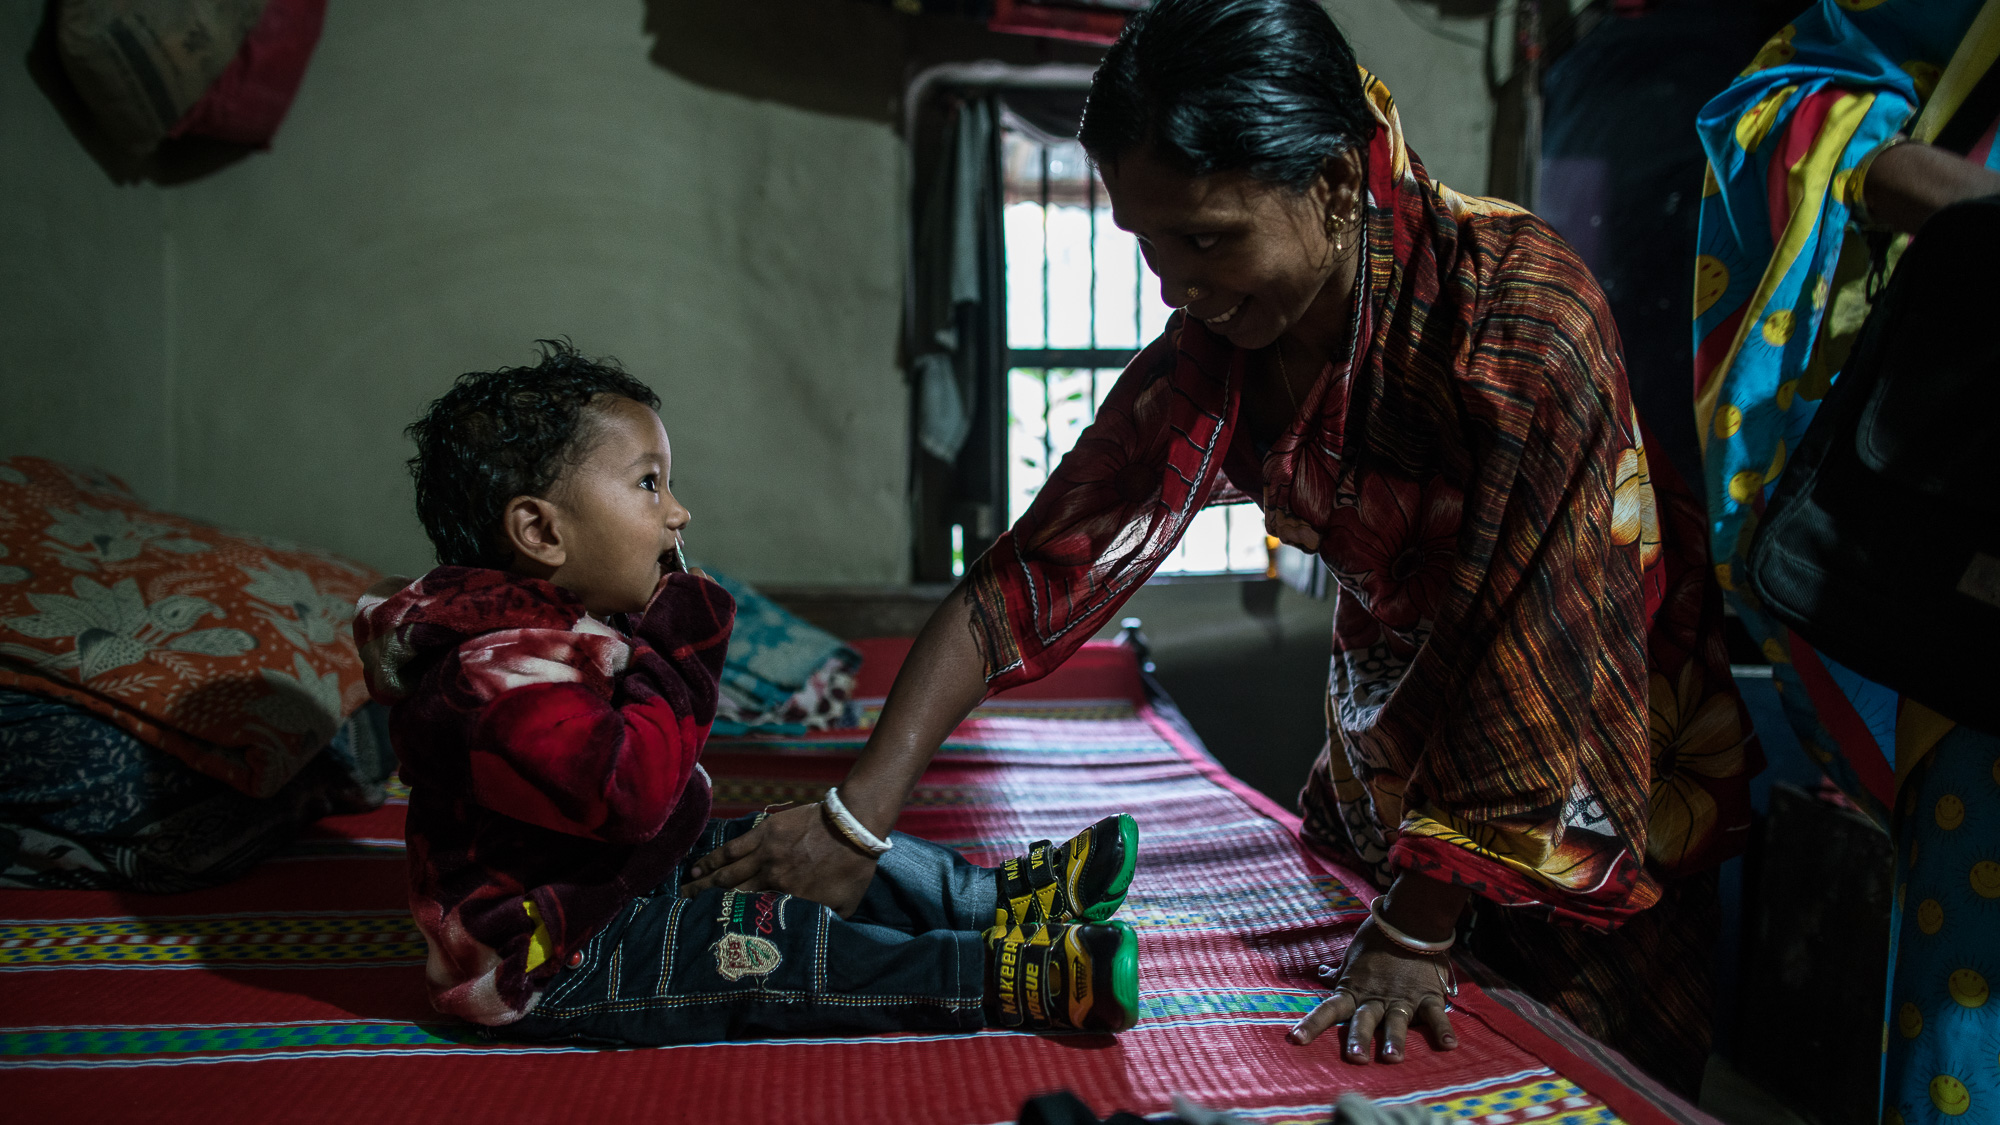 Supriya Dae (mother) and her husband, Rotonu Dey, wake up their son, Ornoy Dey in the morning